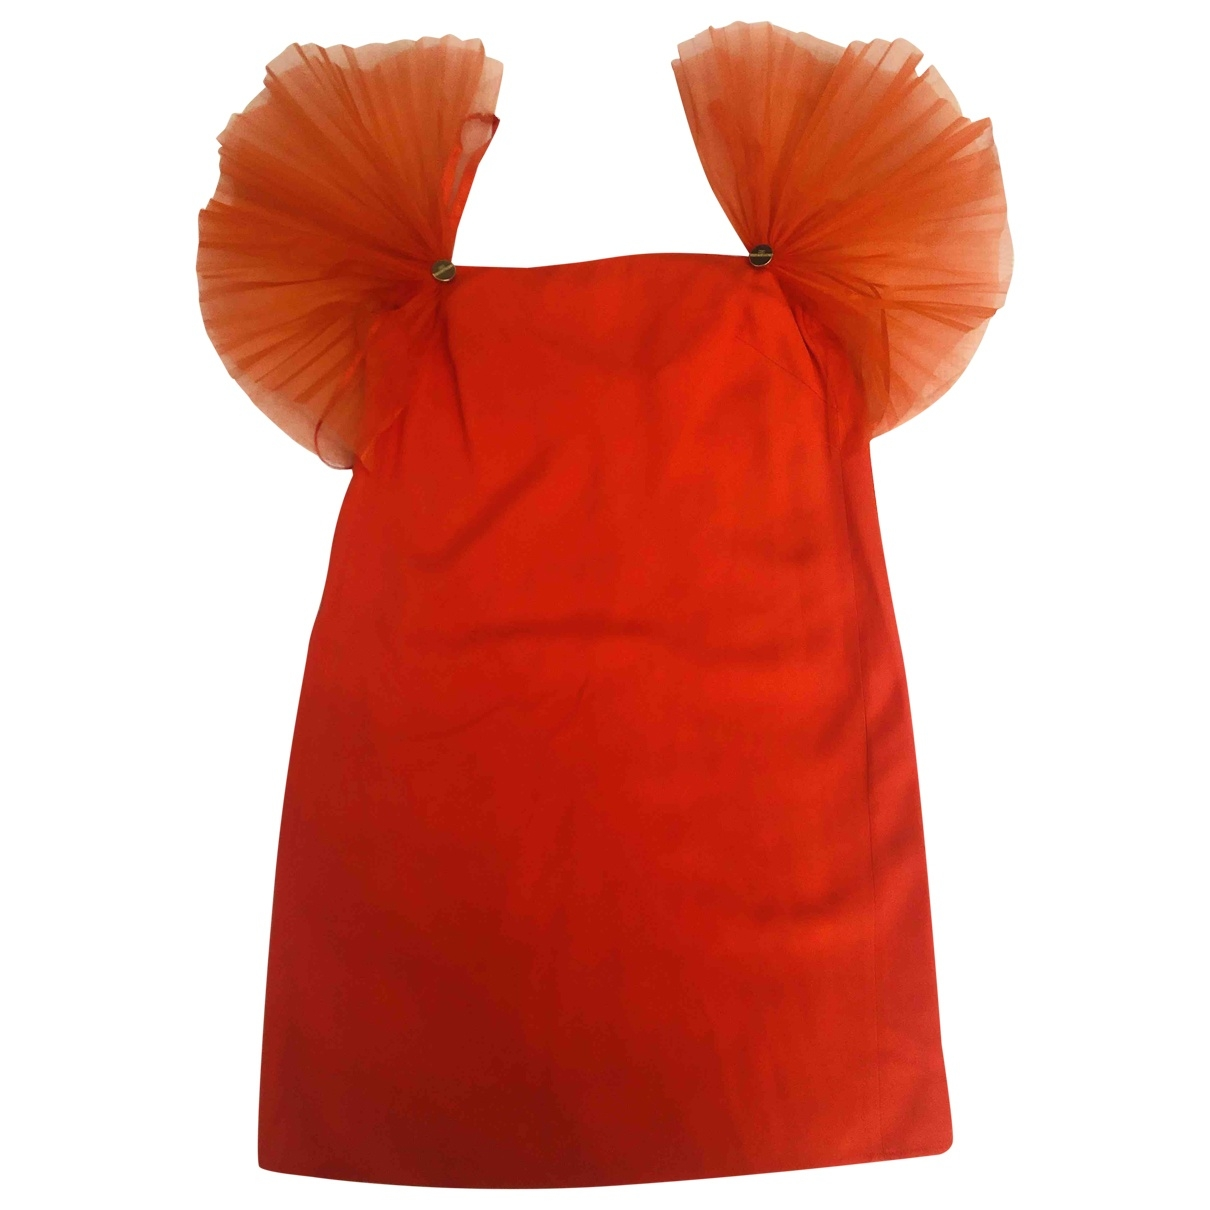 Elisabetta Franchi \N Orange dress for Women 42 FR